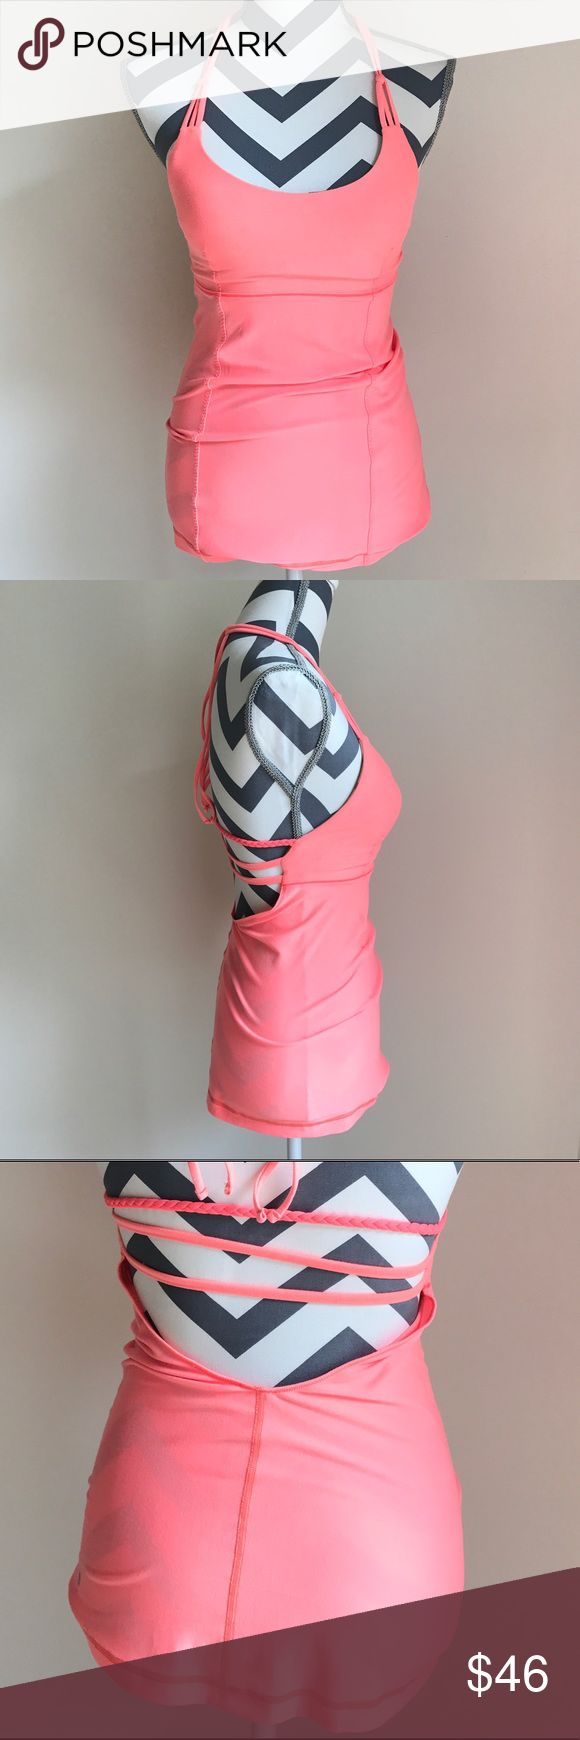 Lululemon Wandering Yogi Halter Grapefruit 4 Like new conditions. Small stitch is cut (IT can bee fix at a lululemon store for free) size 4z Four way stretch fabric. Low back and scoop neck. Cups included lululemon athletica Tops Tank Tops